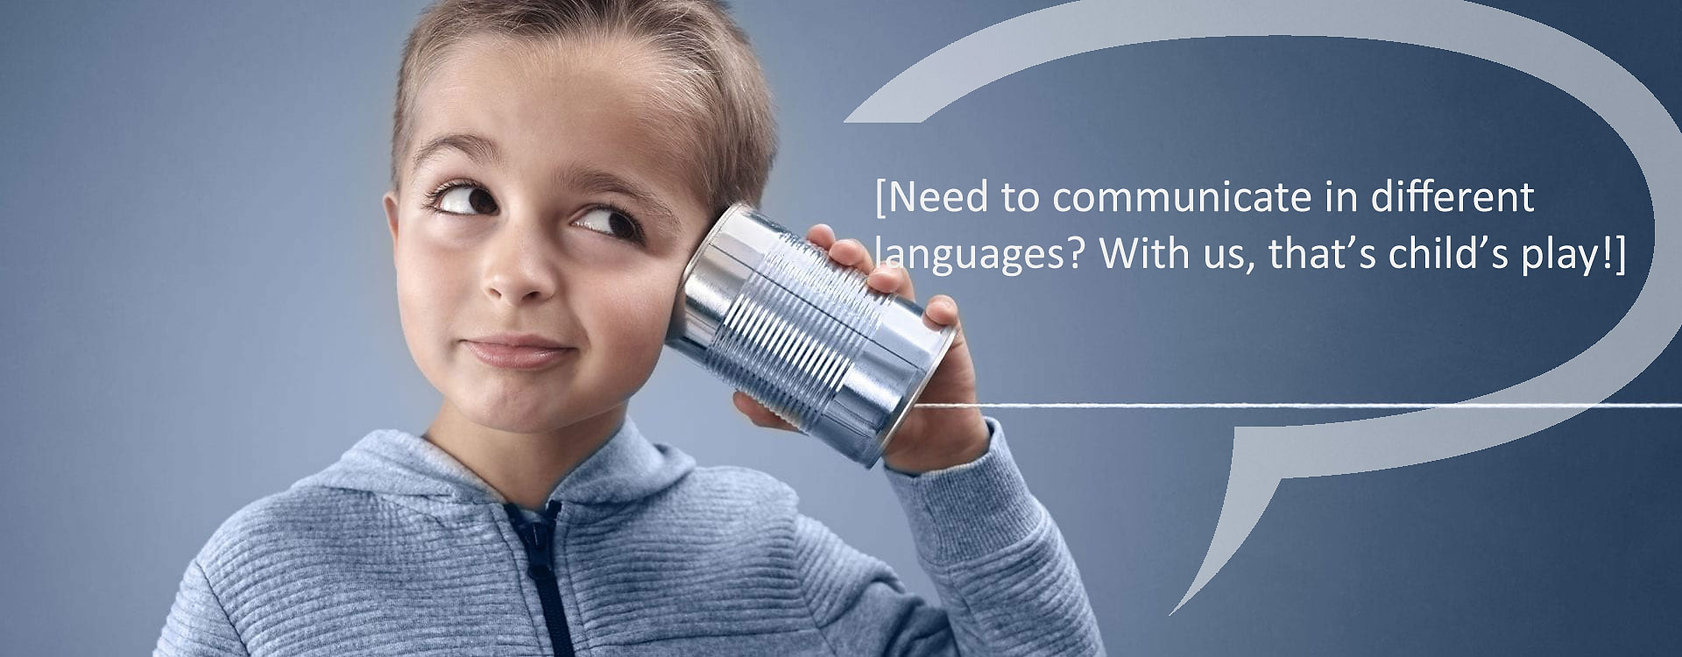 Need to communicate in different languages? With us, that's child's play!